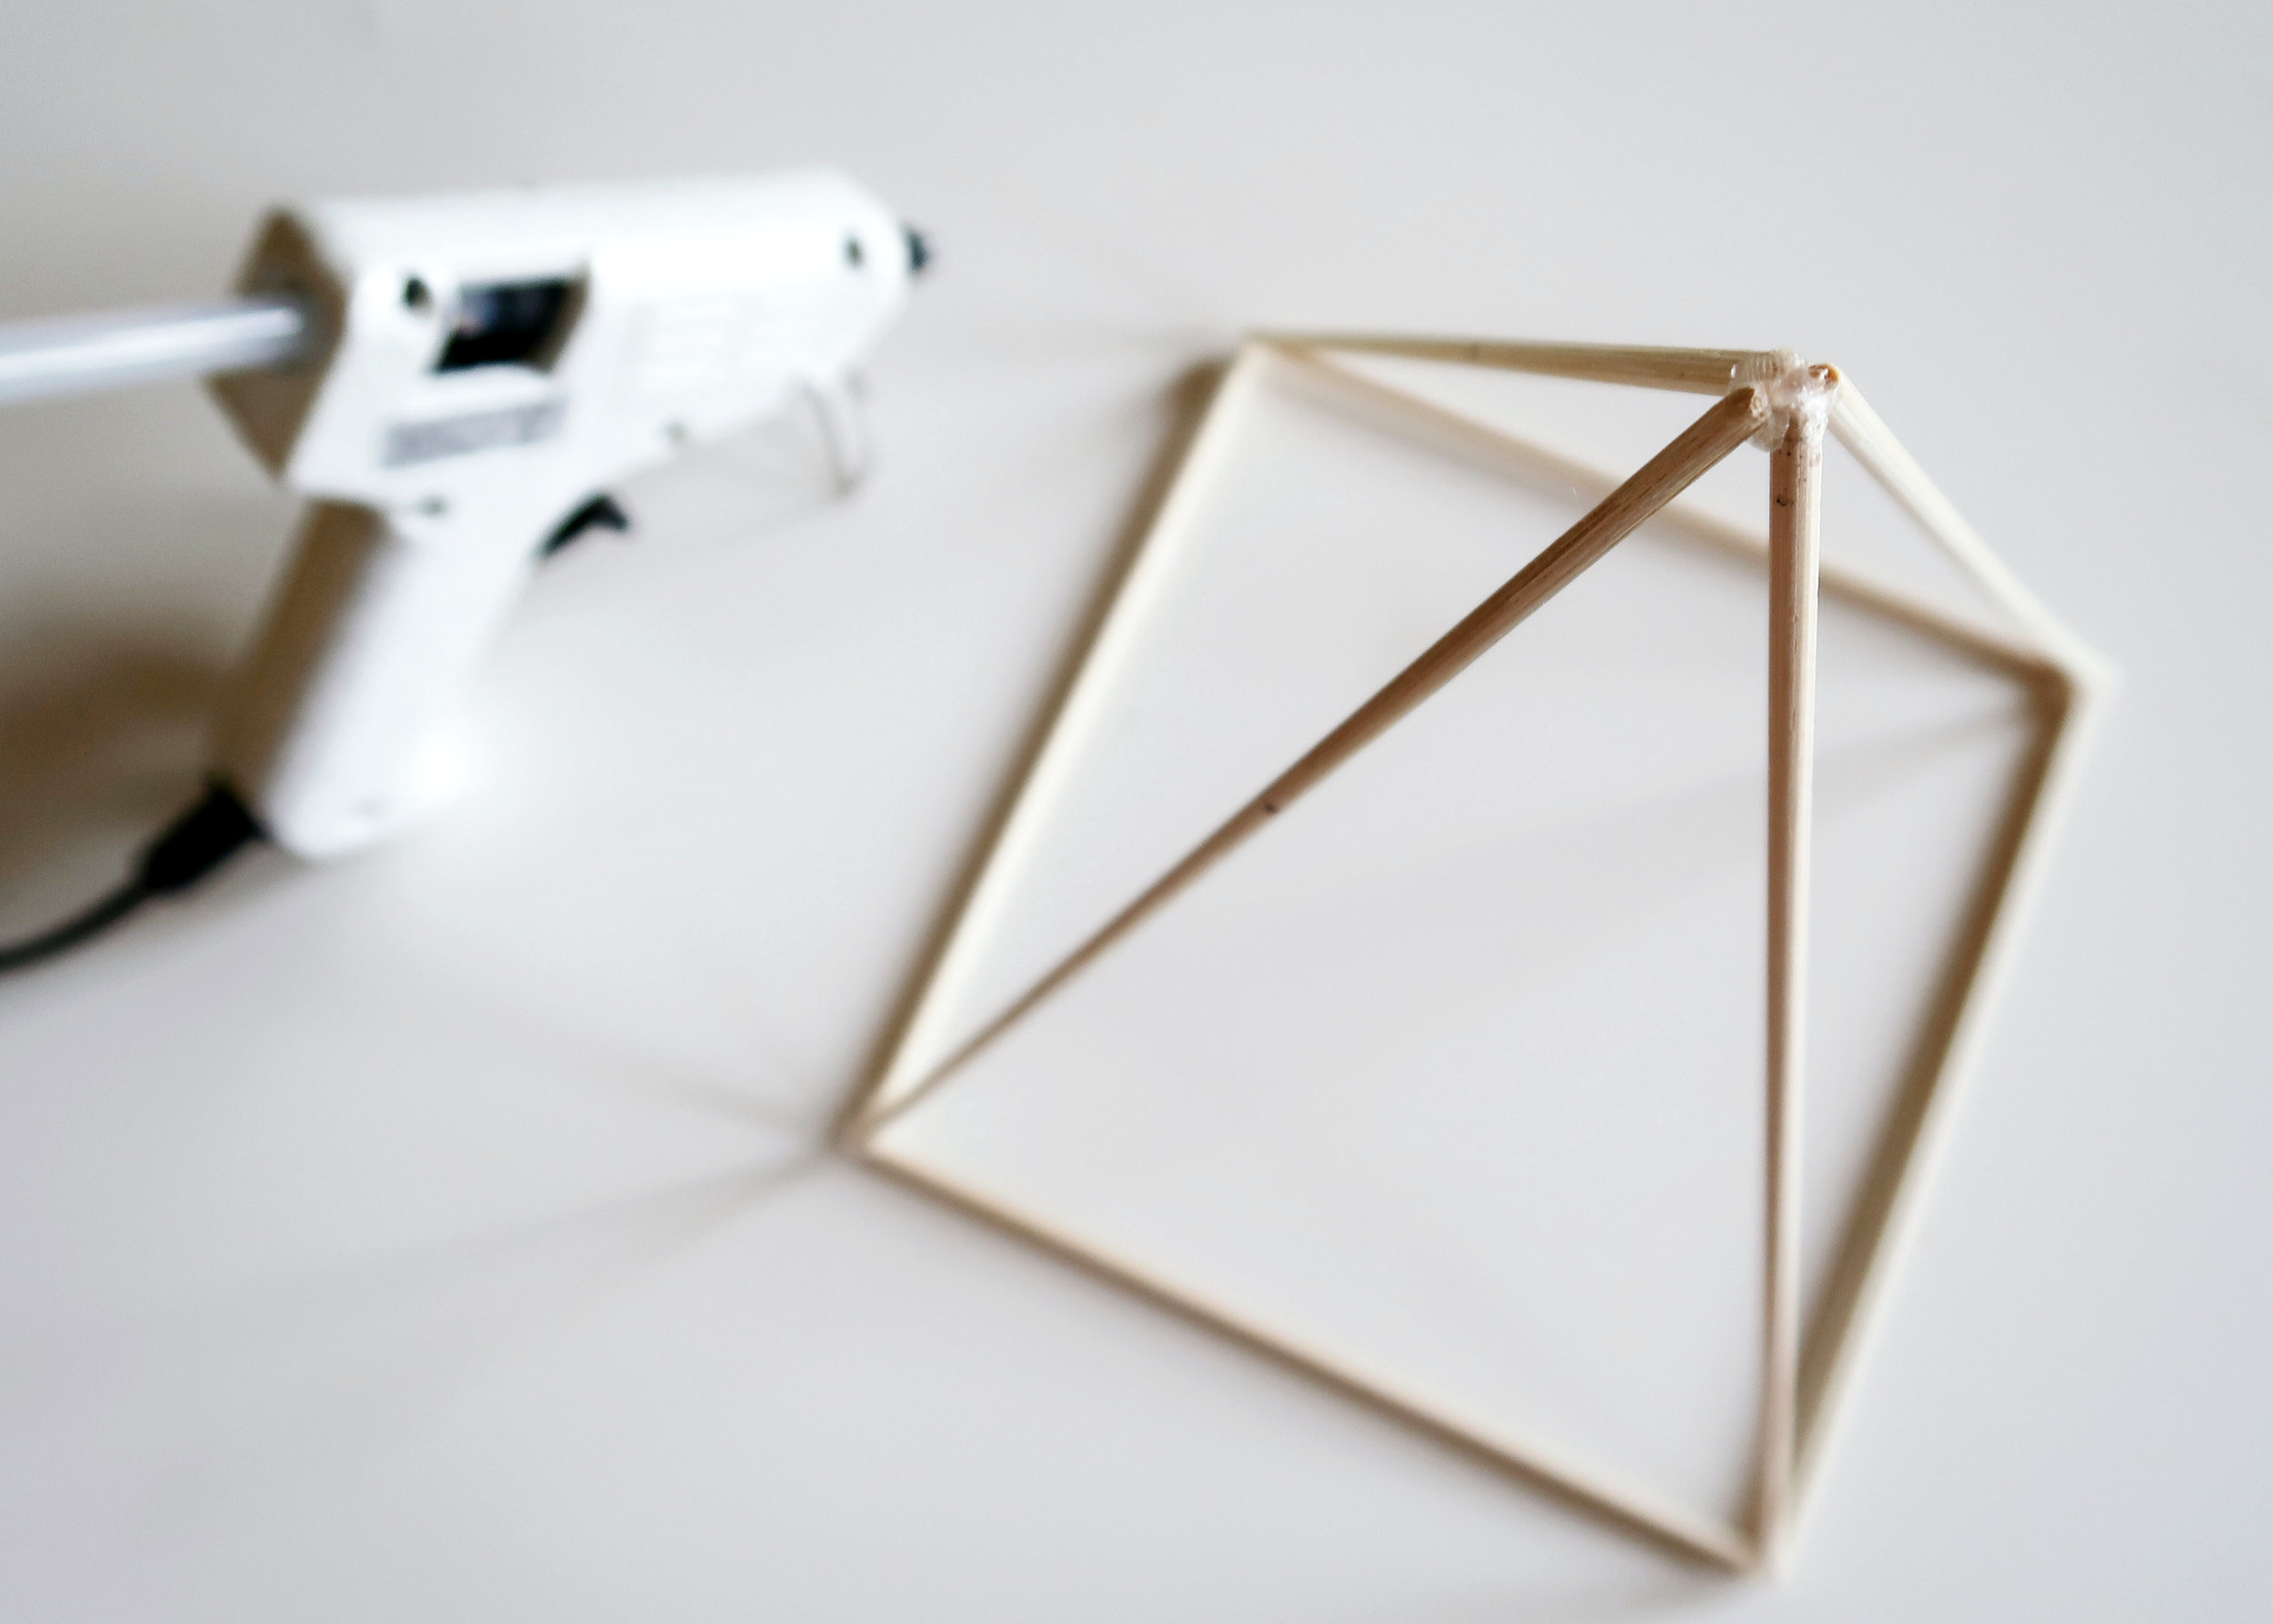 3. - Take the other two lengths of 20cm and as before, glue these on top of the square on the other two corners. Glue them together with the other two lengths to form a pyramid shape.